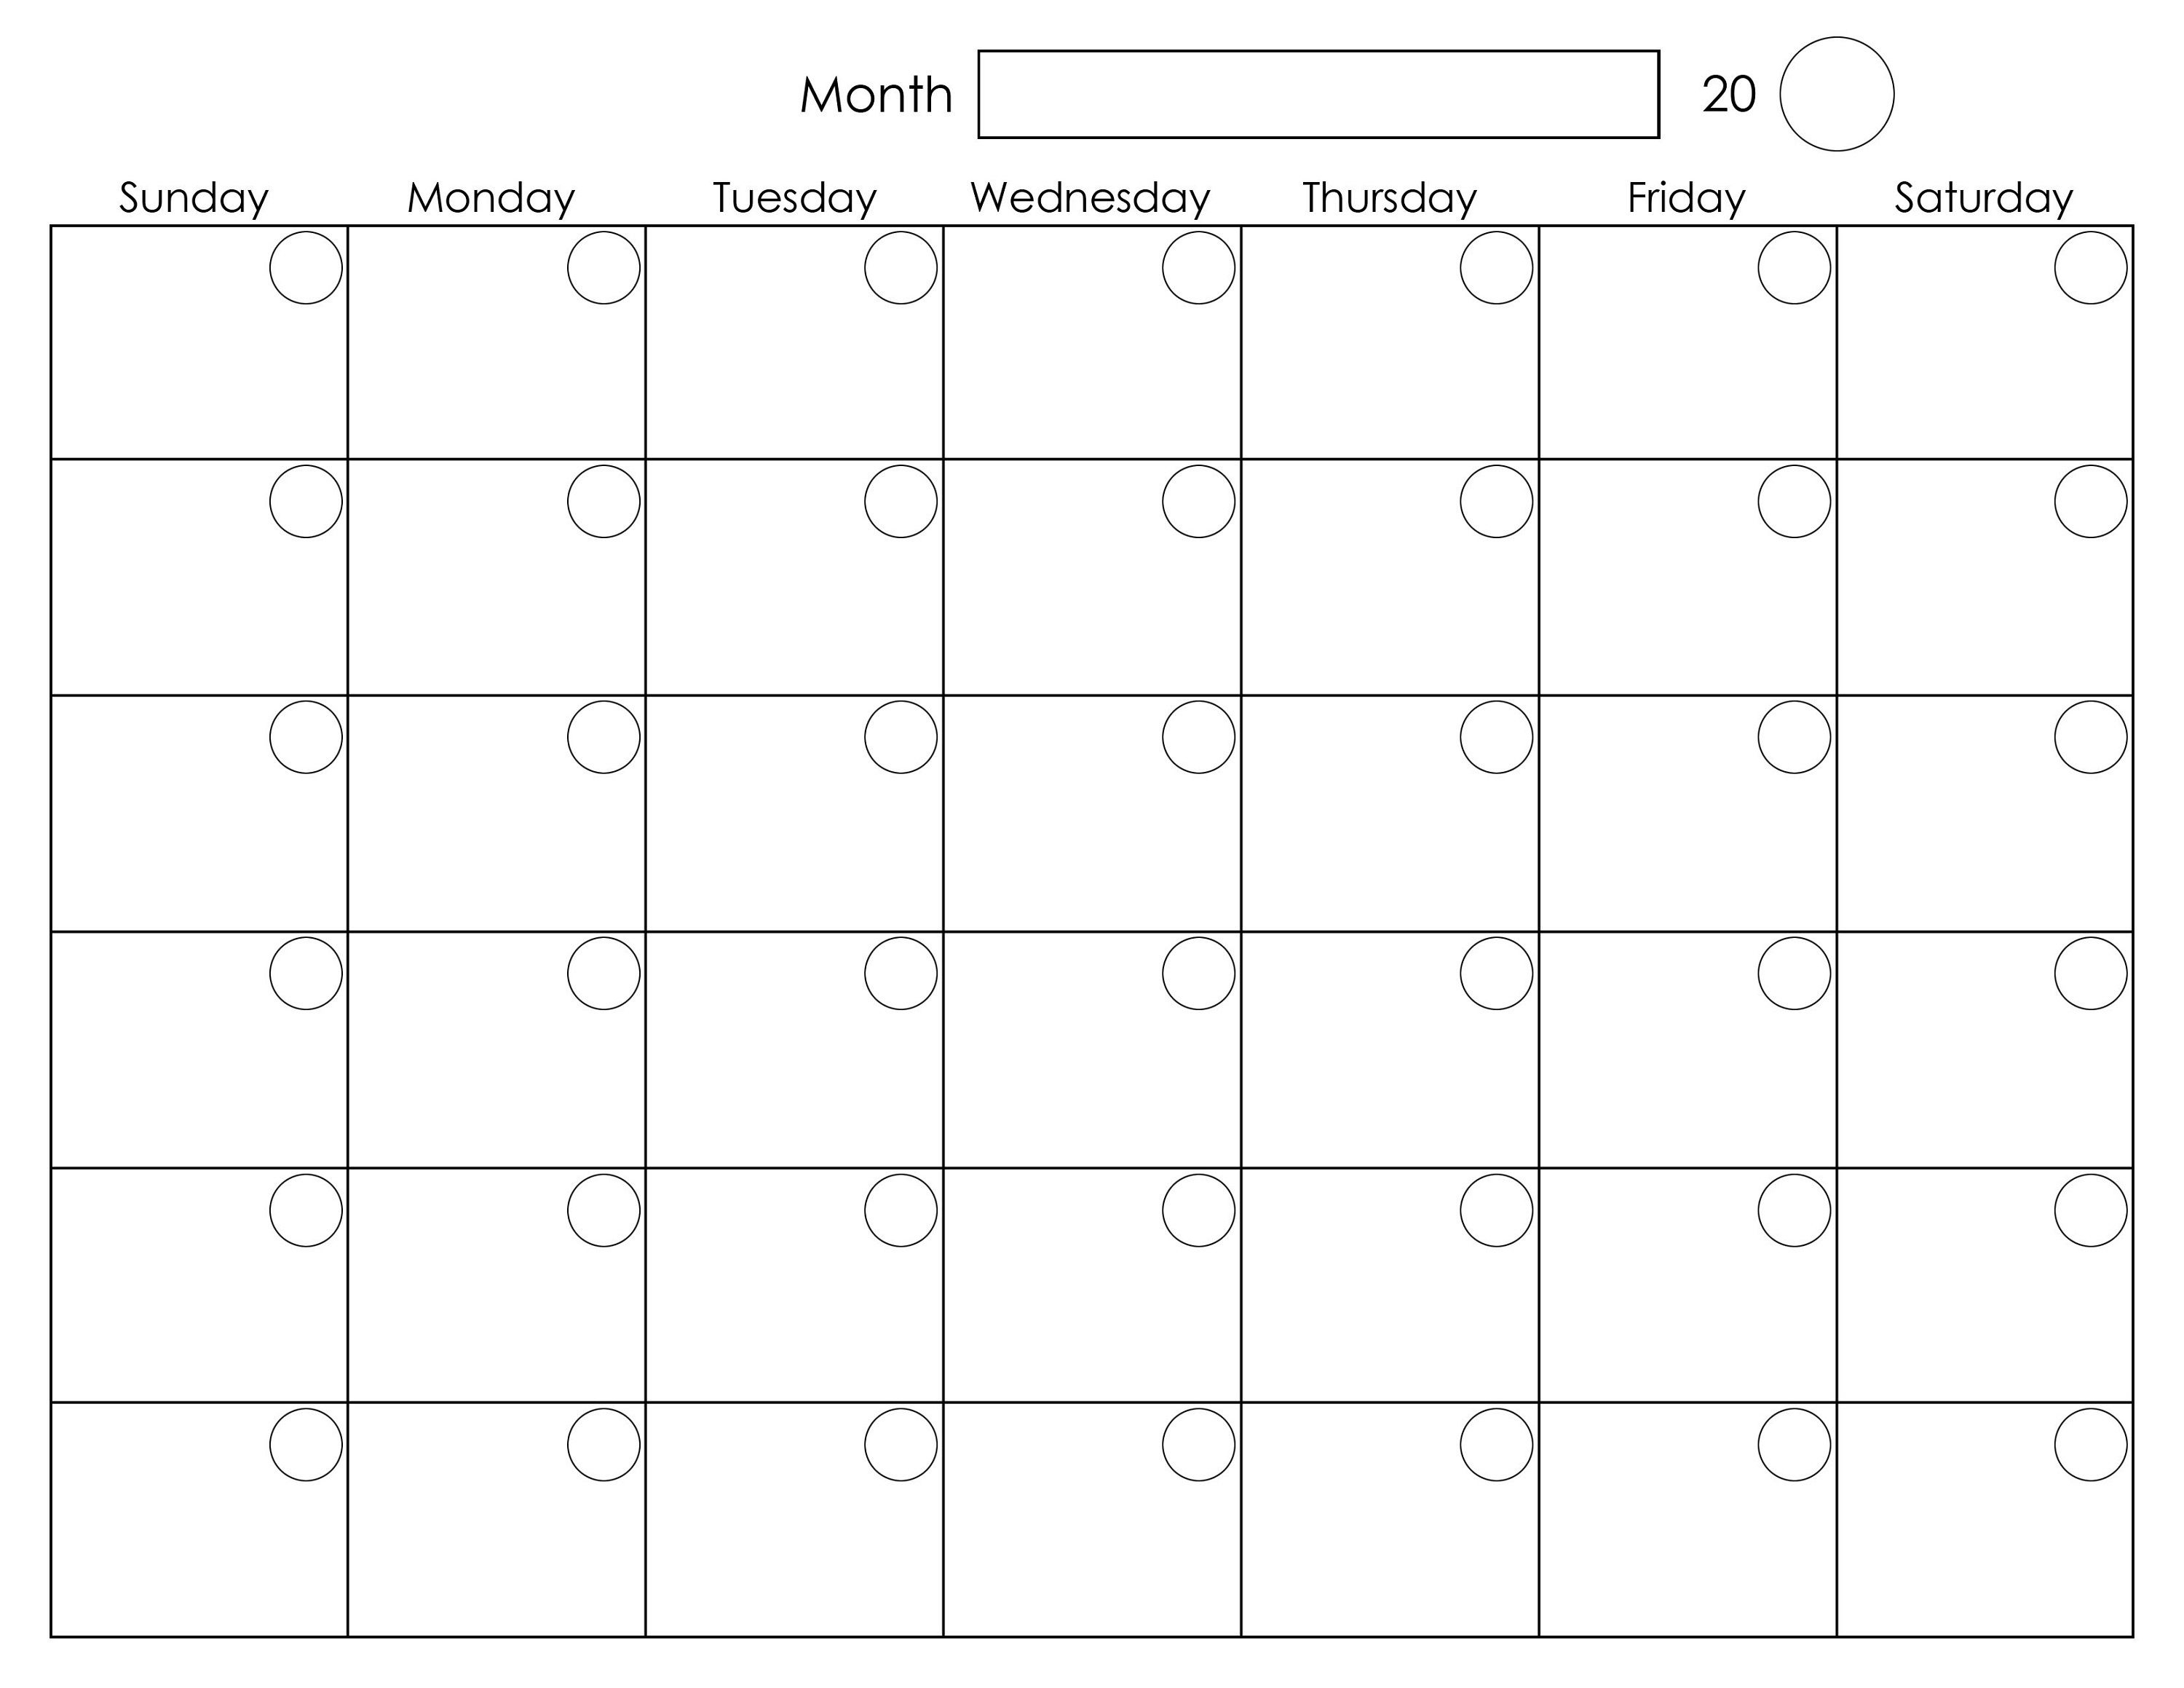 Printable Blank Monthly Calendar | Calendar Template Printable with Free Blank Monthly Planner Templates